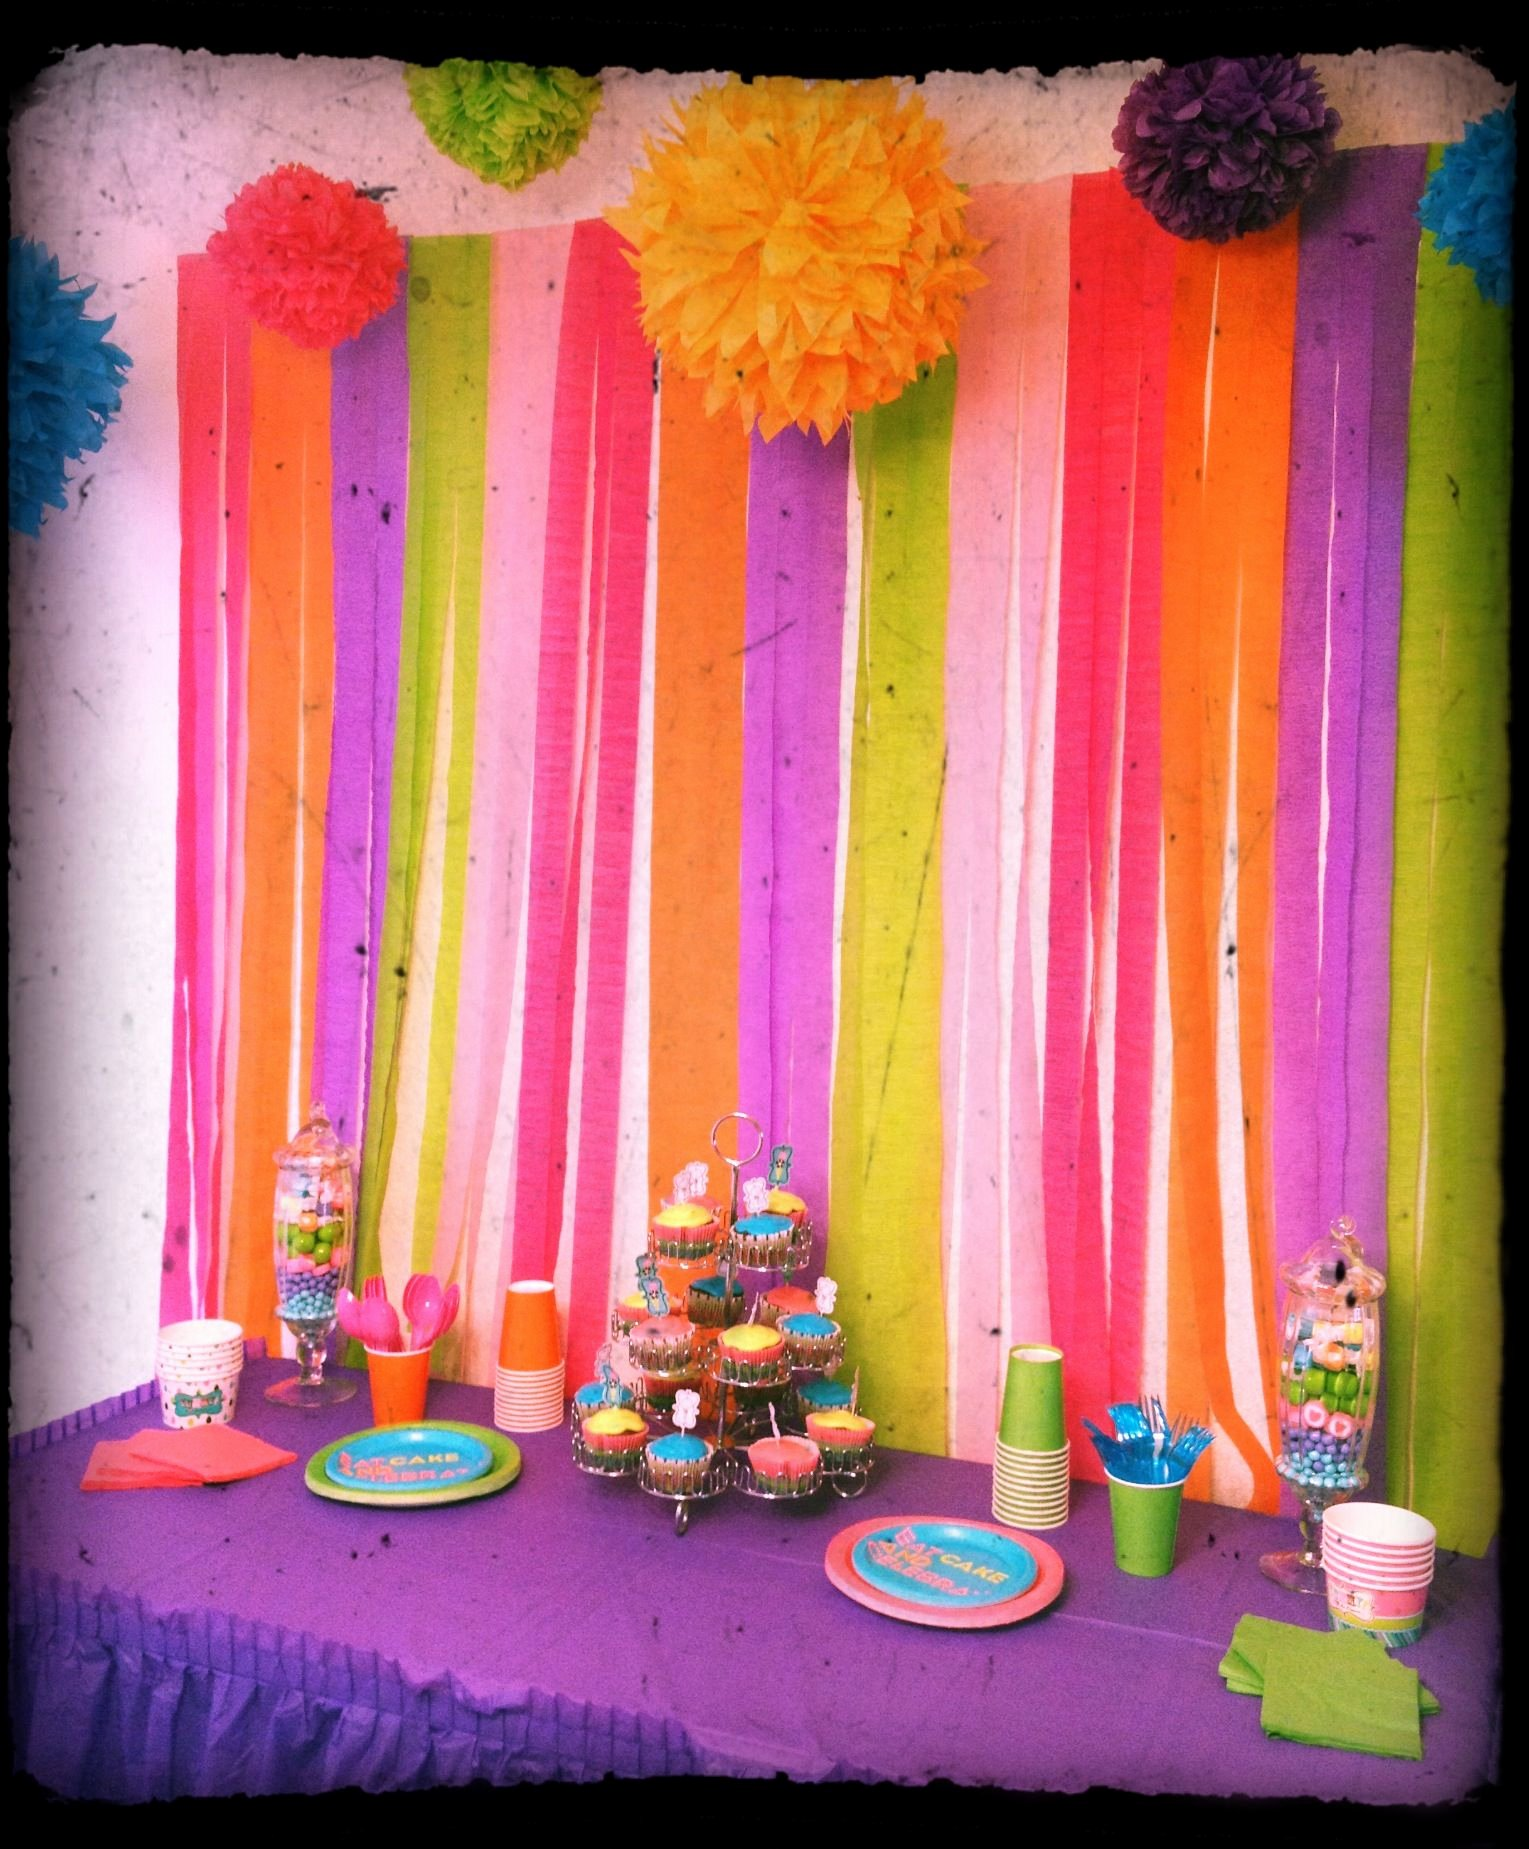 7th Birthday Decoration Ideas for Girl Awesome Pin De Amber Spinner En Sweetness 3